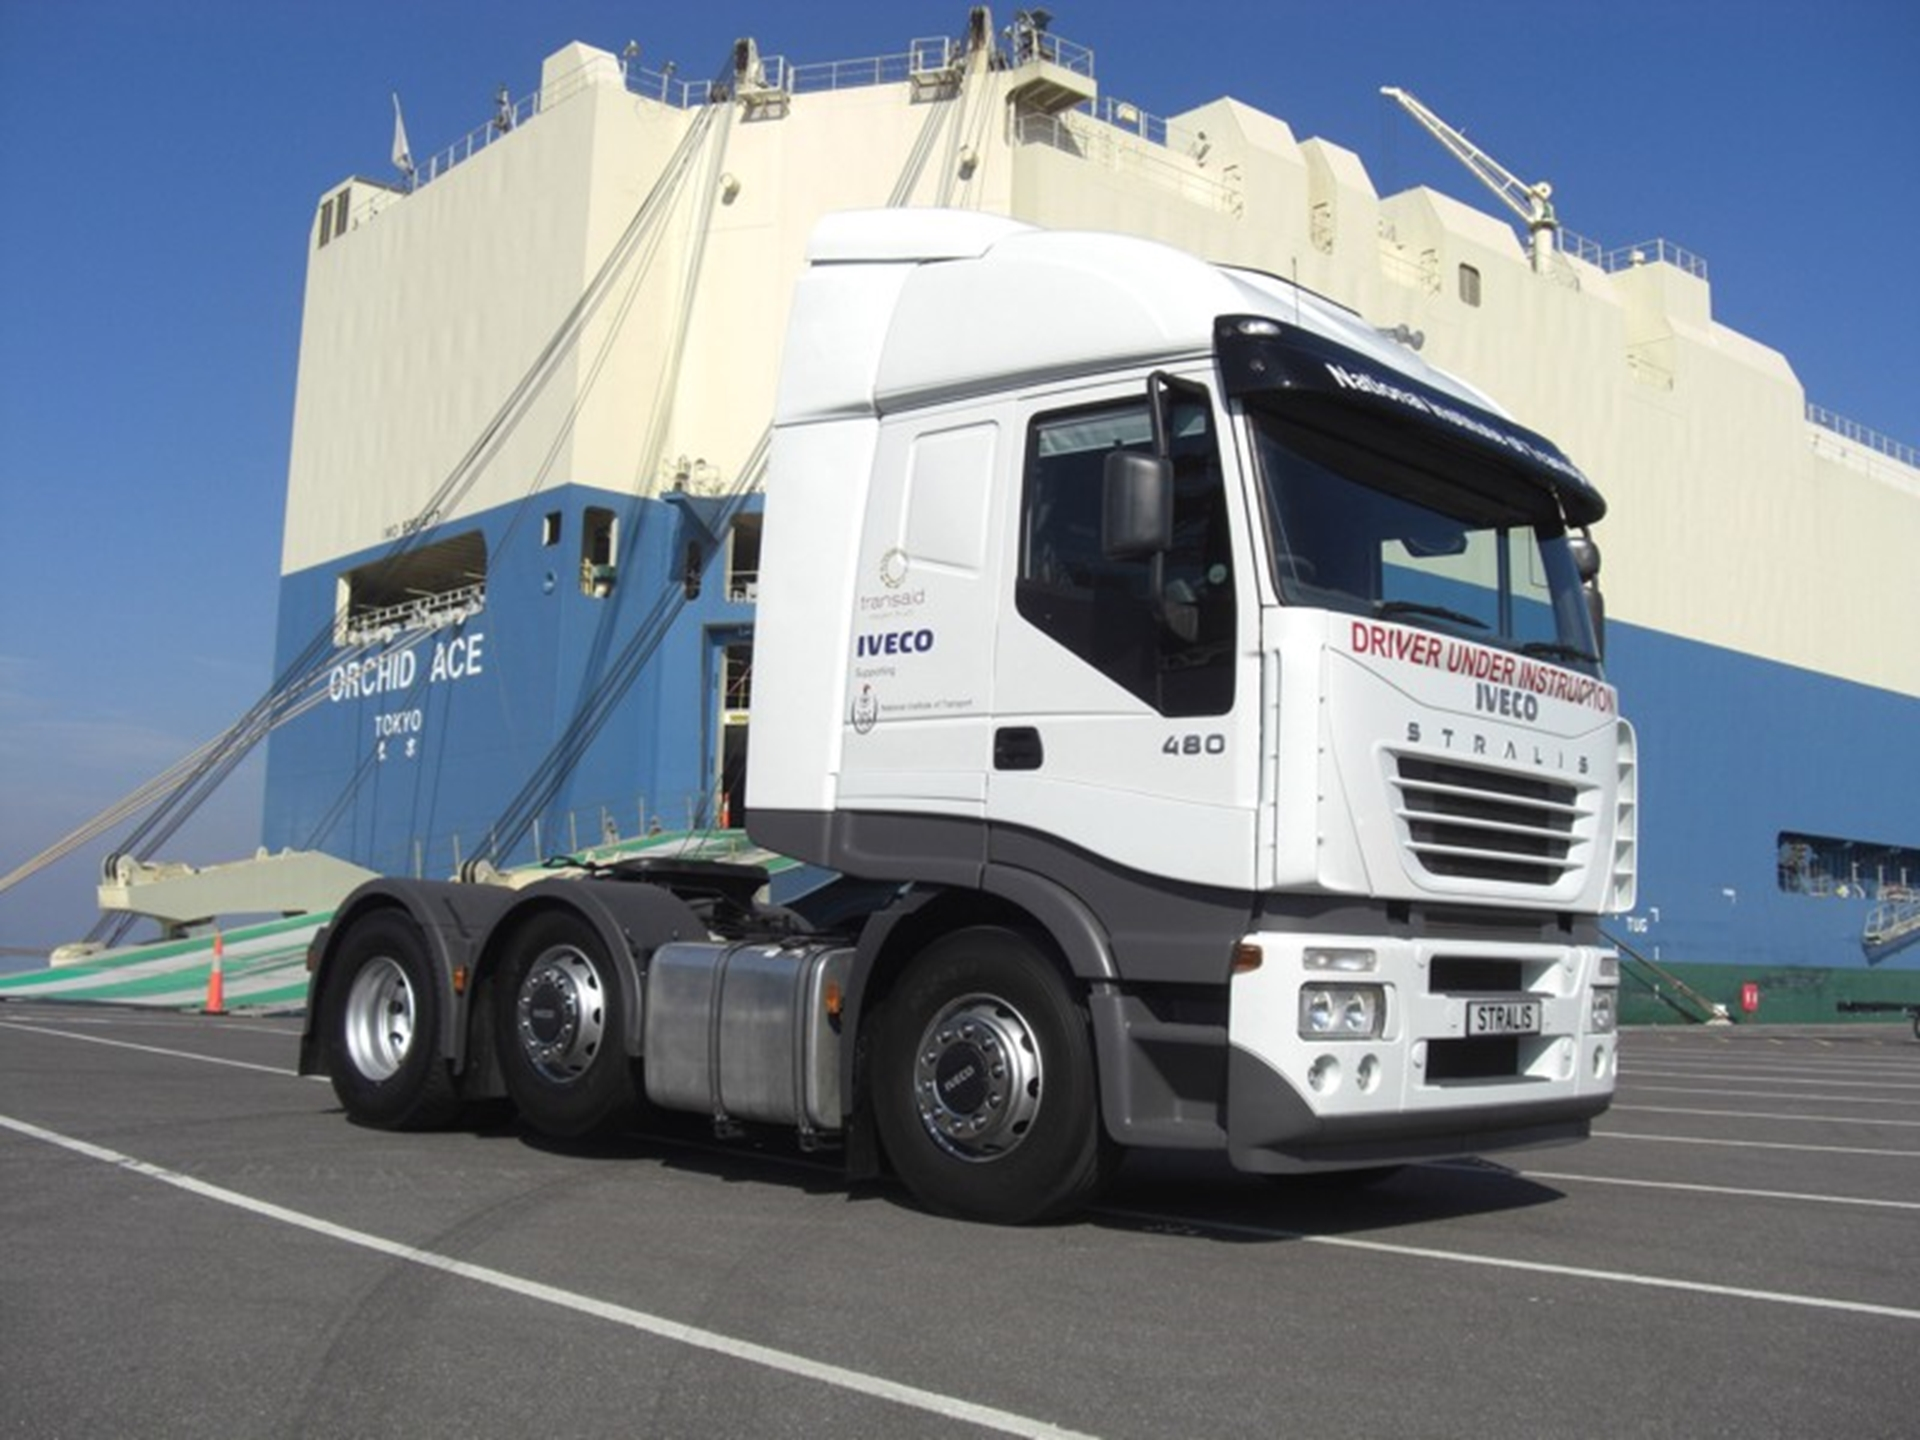 Iveco Stralis leaves UK for driver training role in Tanzania